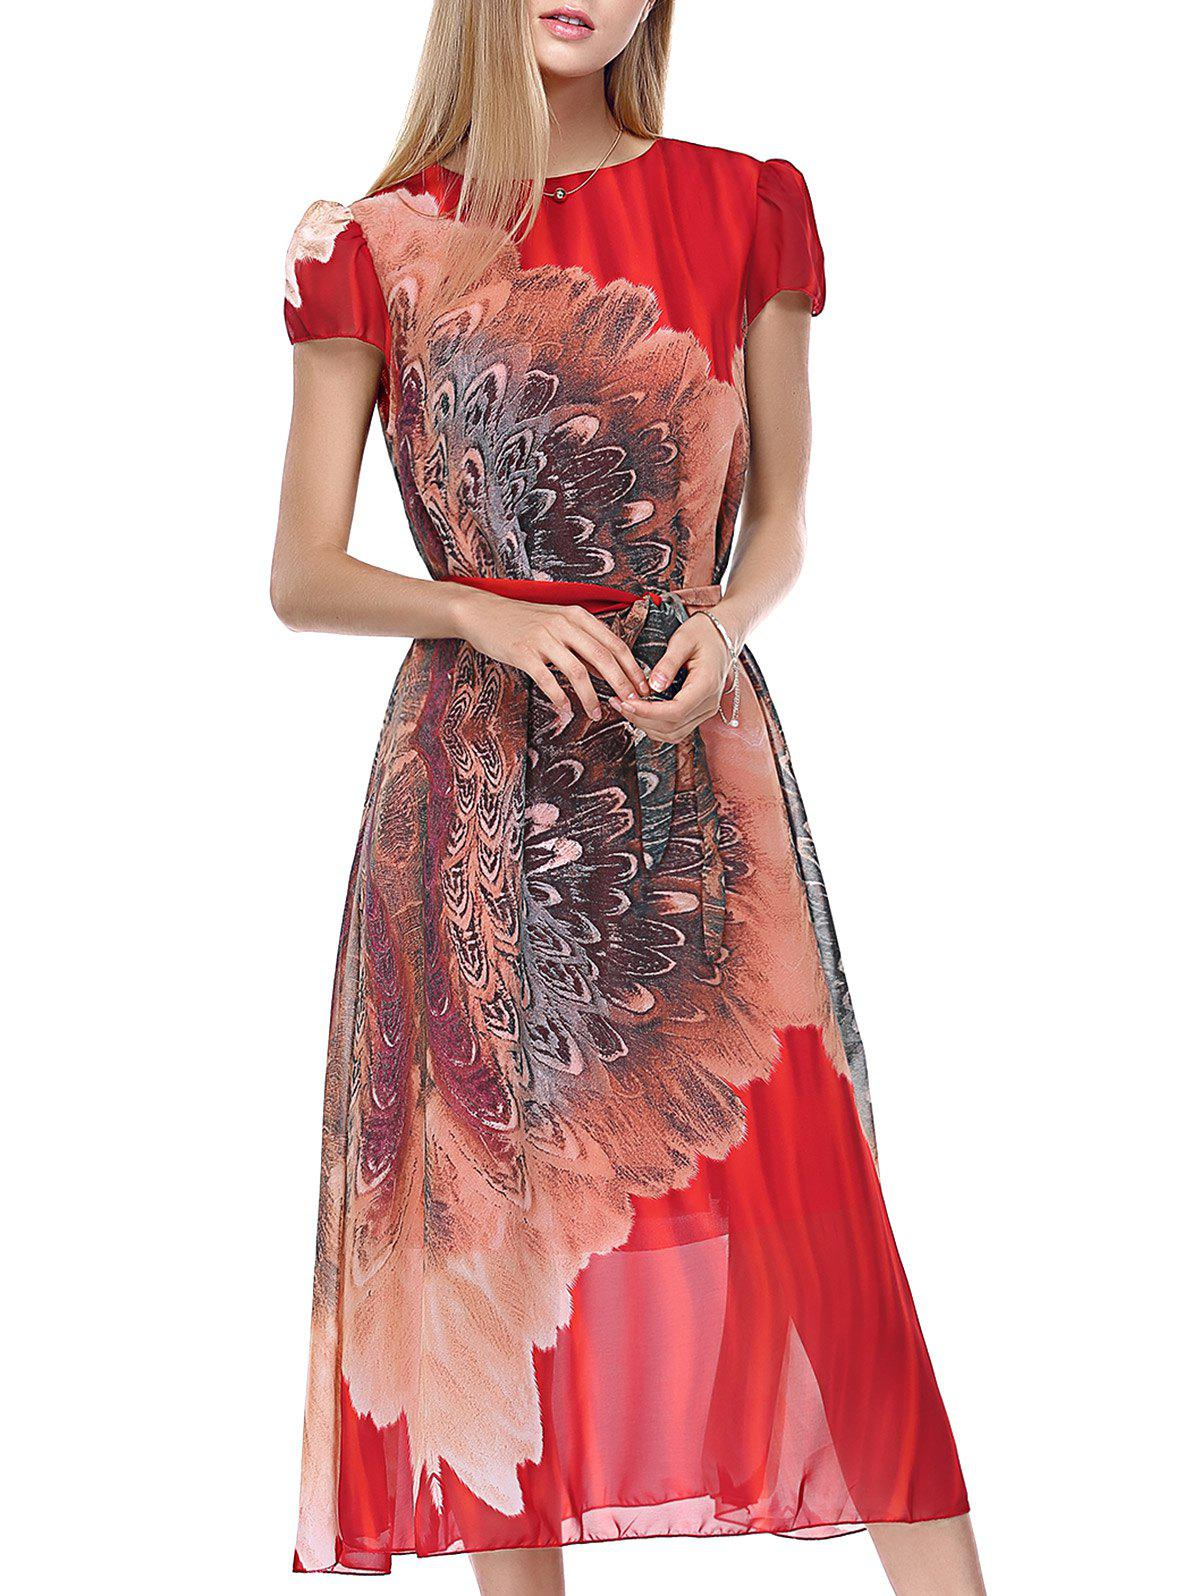 Bohemian Floral Pattern Cap Sleeve Women's Chiffon Dress - ONE SIZE(FIT SIZE XS TO M) RED